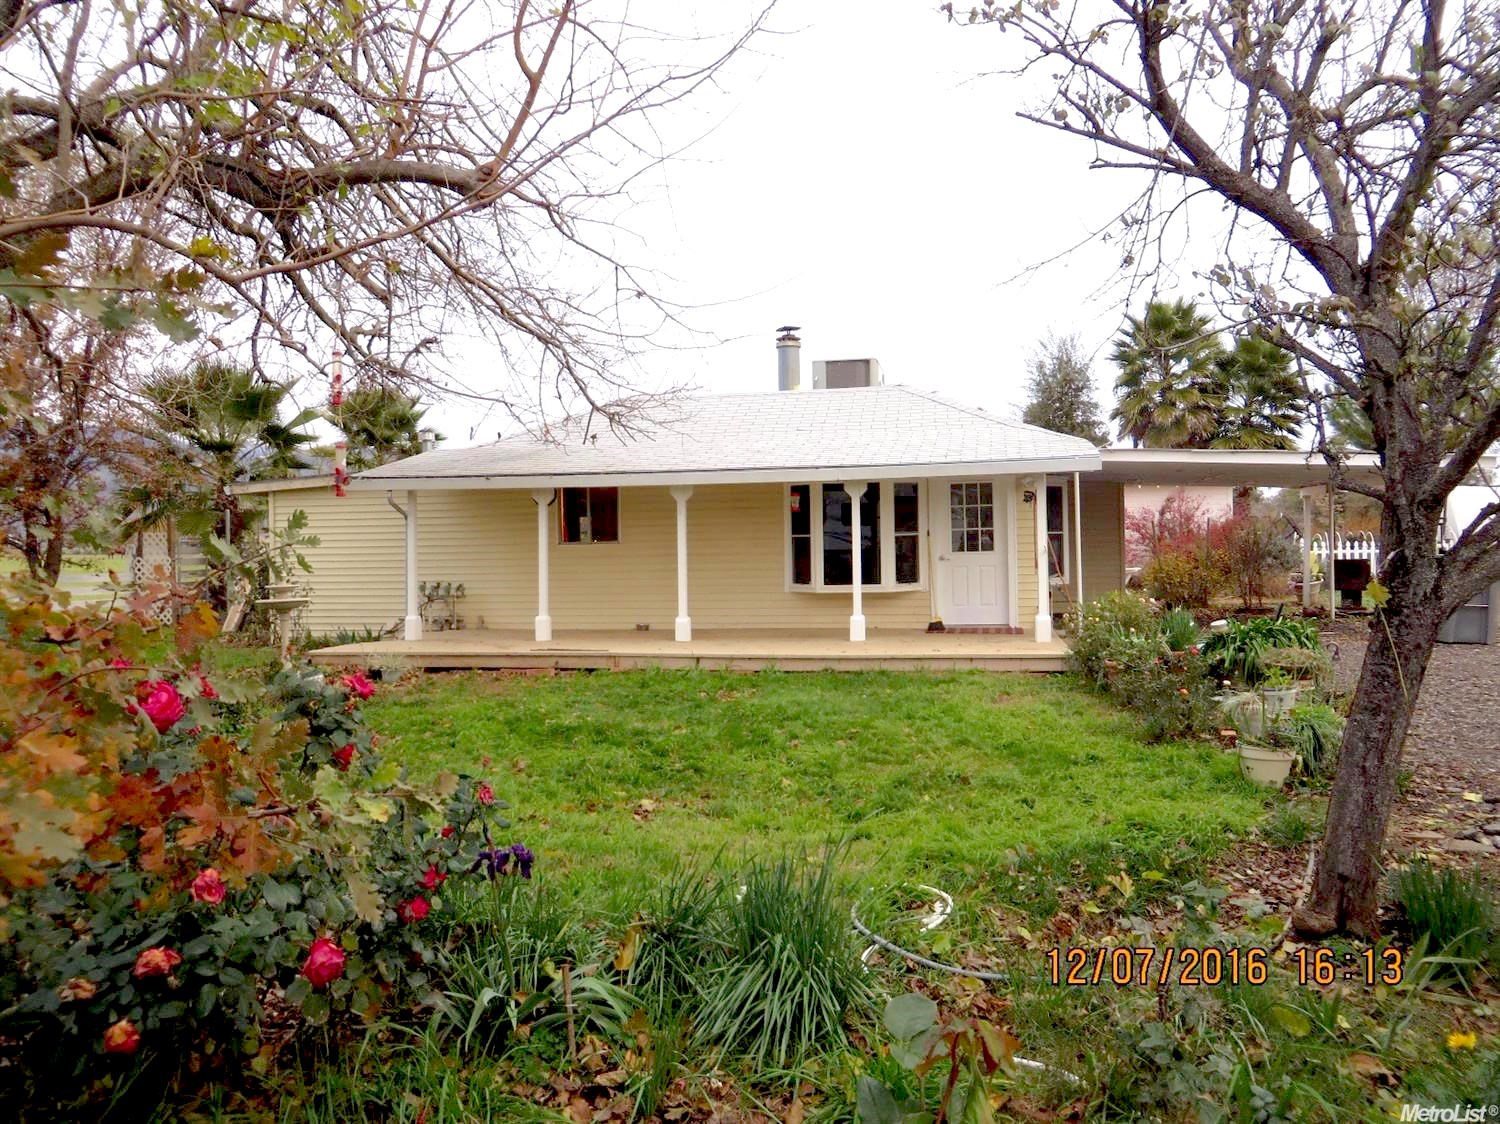 Capay Valley Home for Sale - Northern California Yolo County